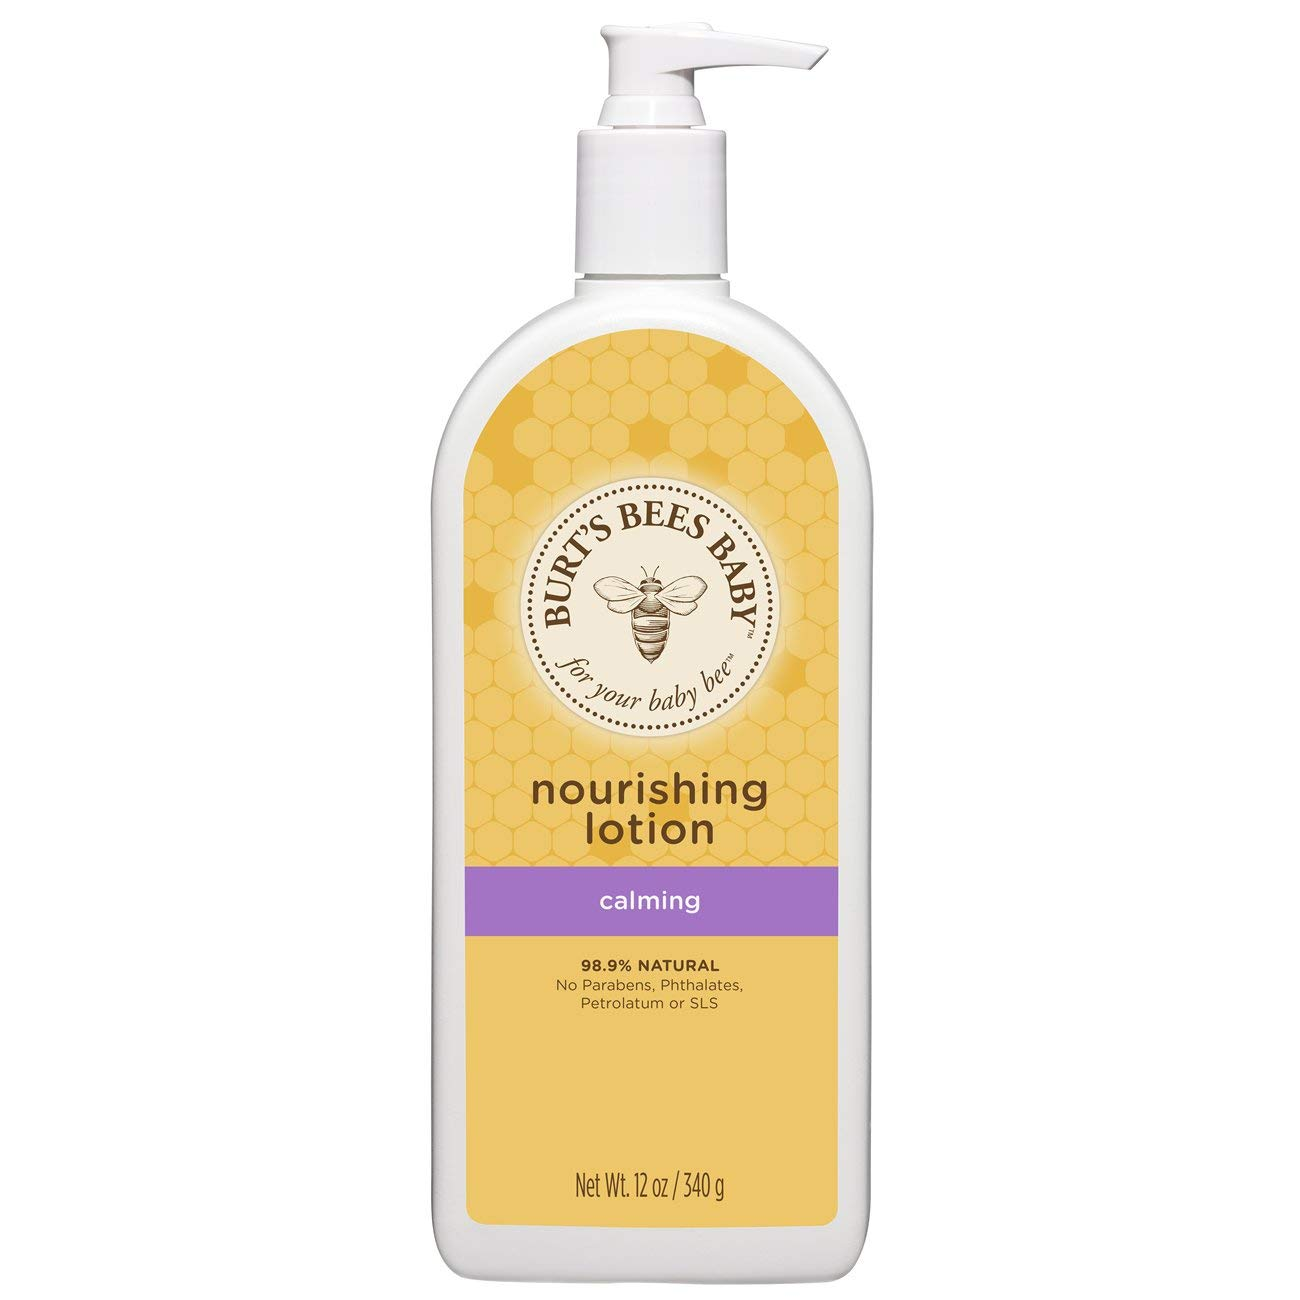 Burt's Bees Baby Bee Calming Lotion, 6 Oz (Packaging May Vary) Burt' s Bees BUB10208